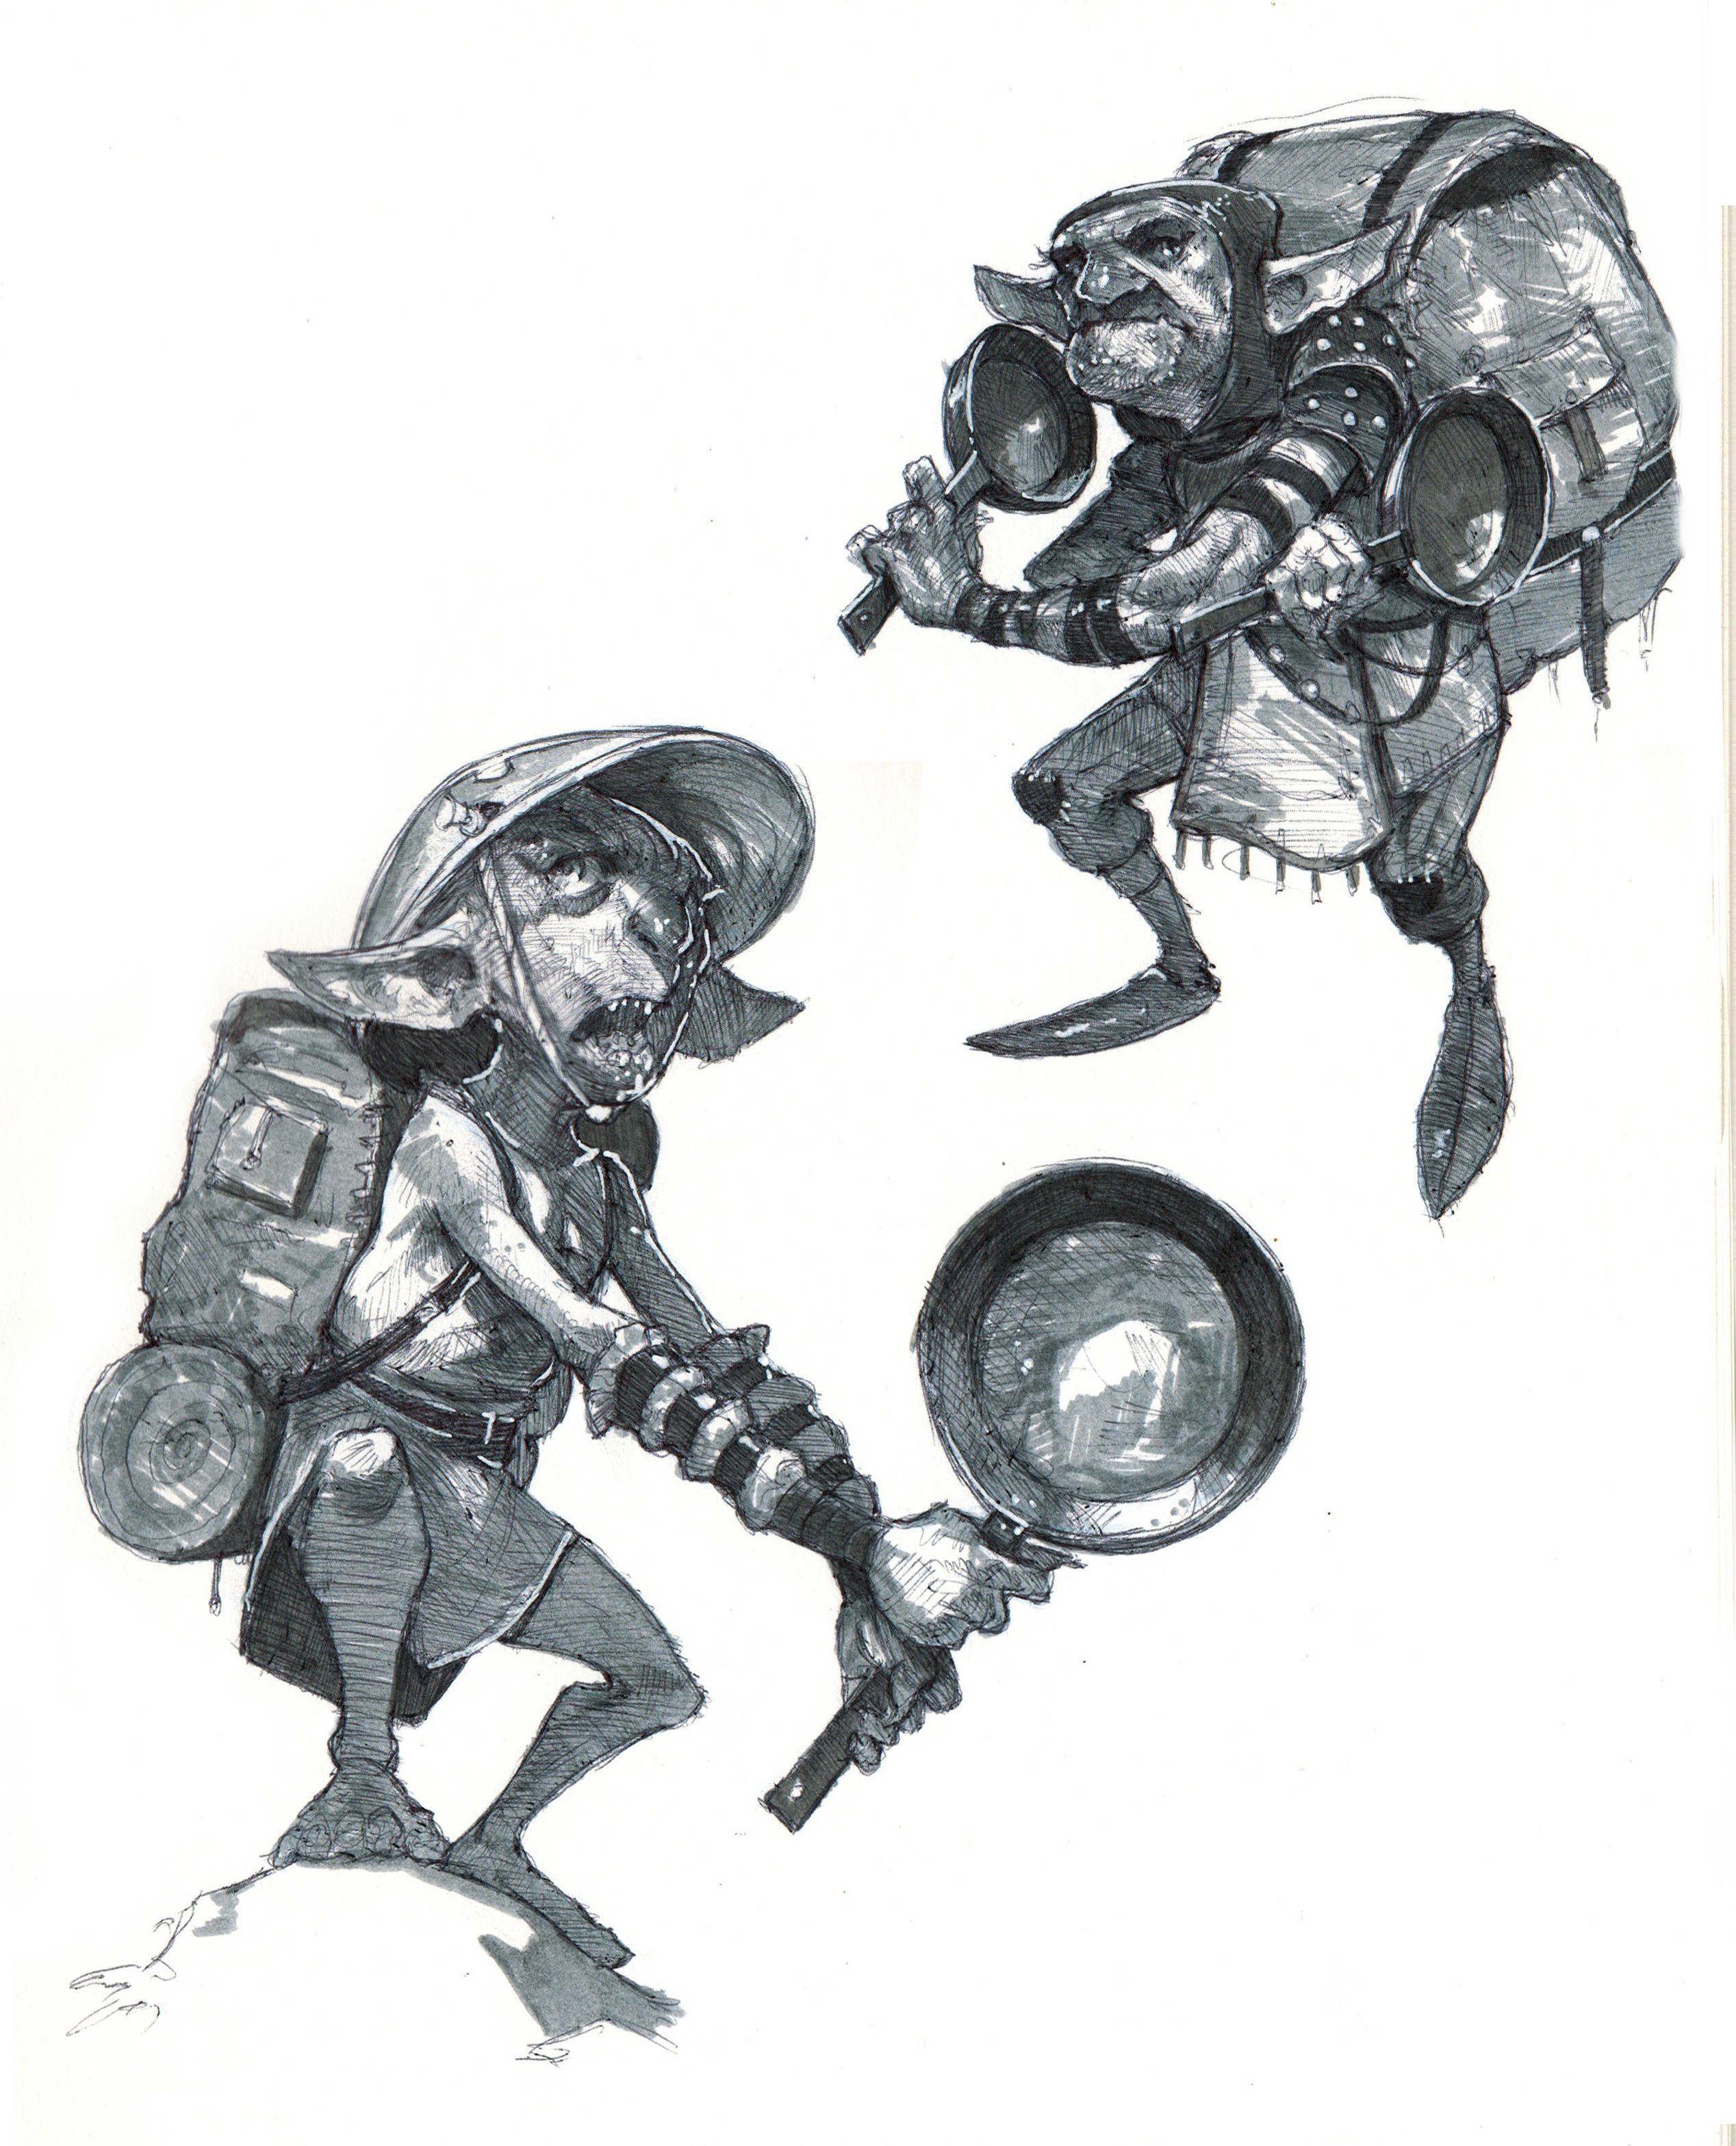 Ink sketches of the goblin, Droop, wielding mighty frying pans (which I've named Surf and Turf)